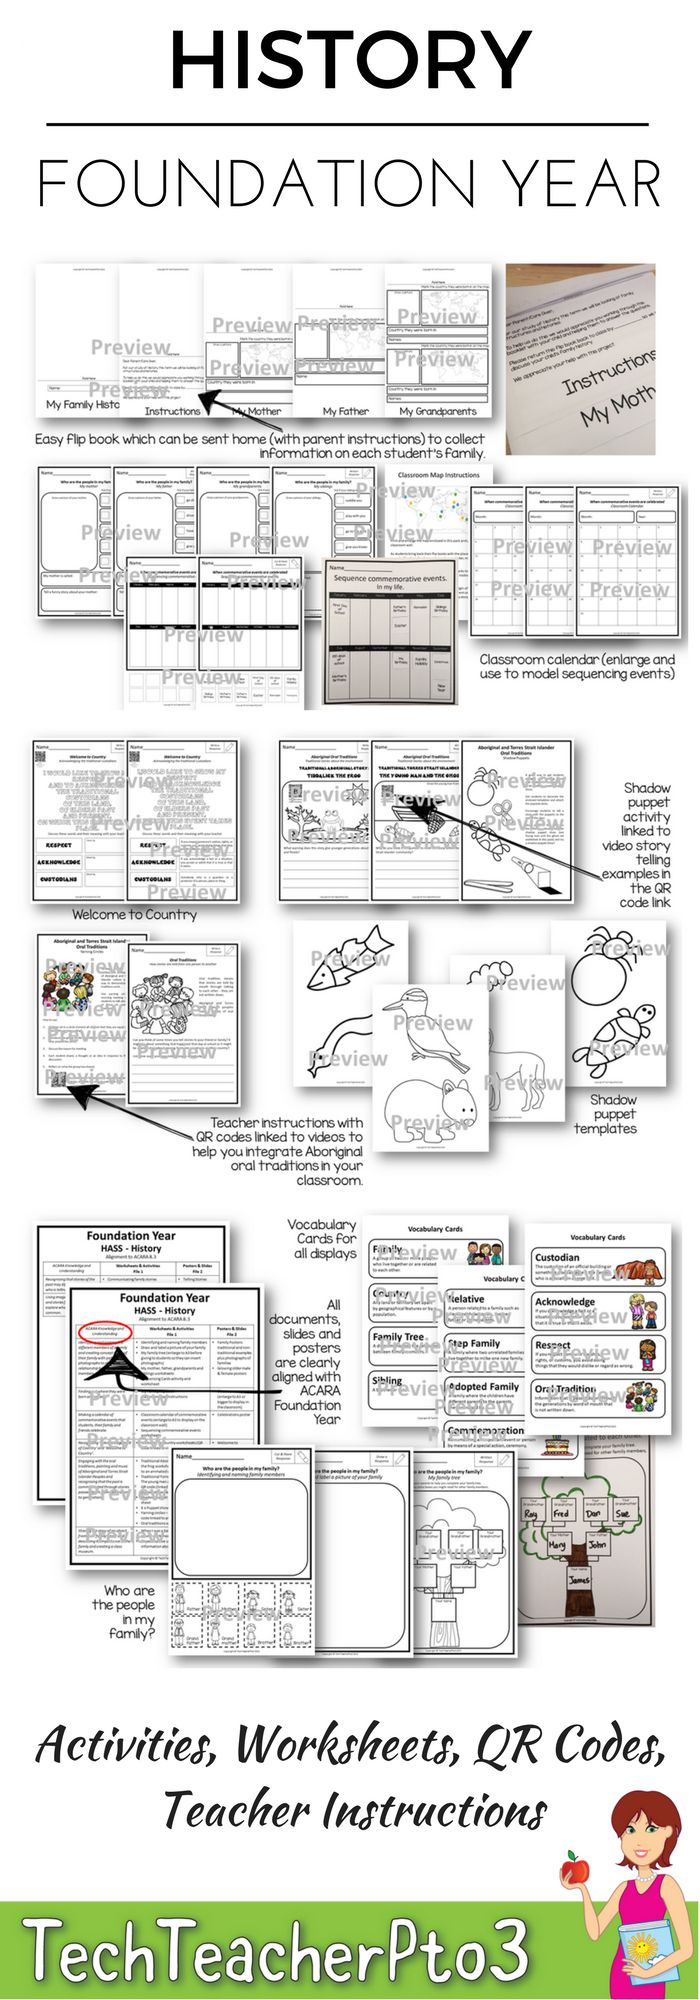 155 best ** My Teaching Products ** images on Pinterest ...